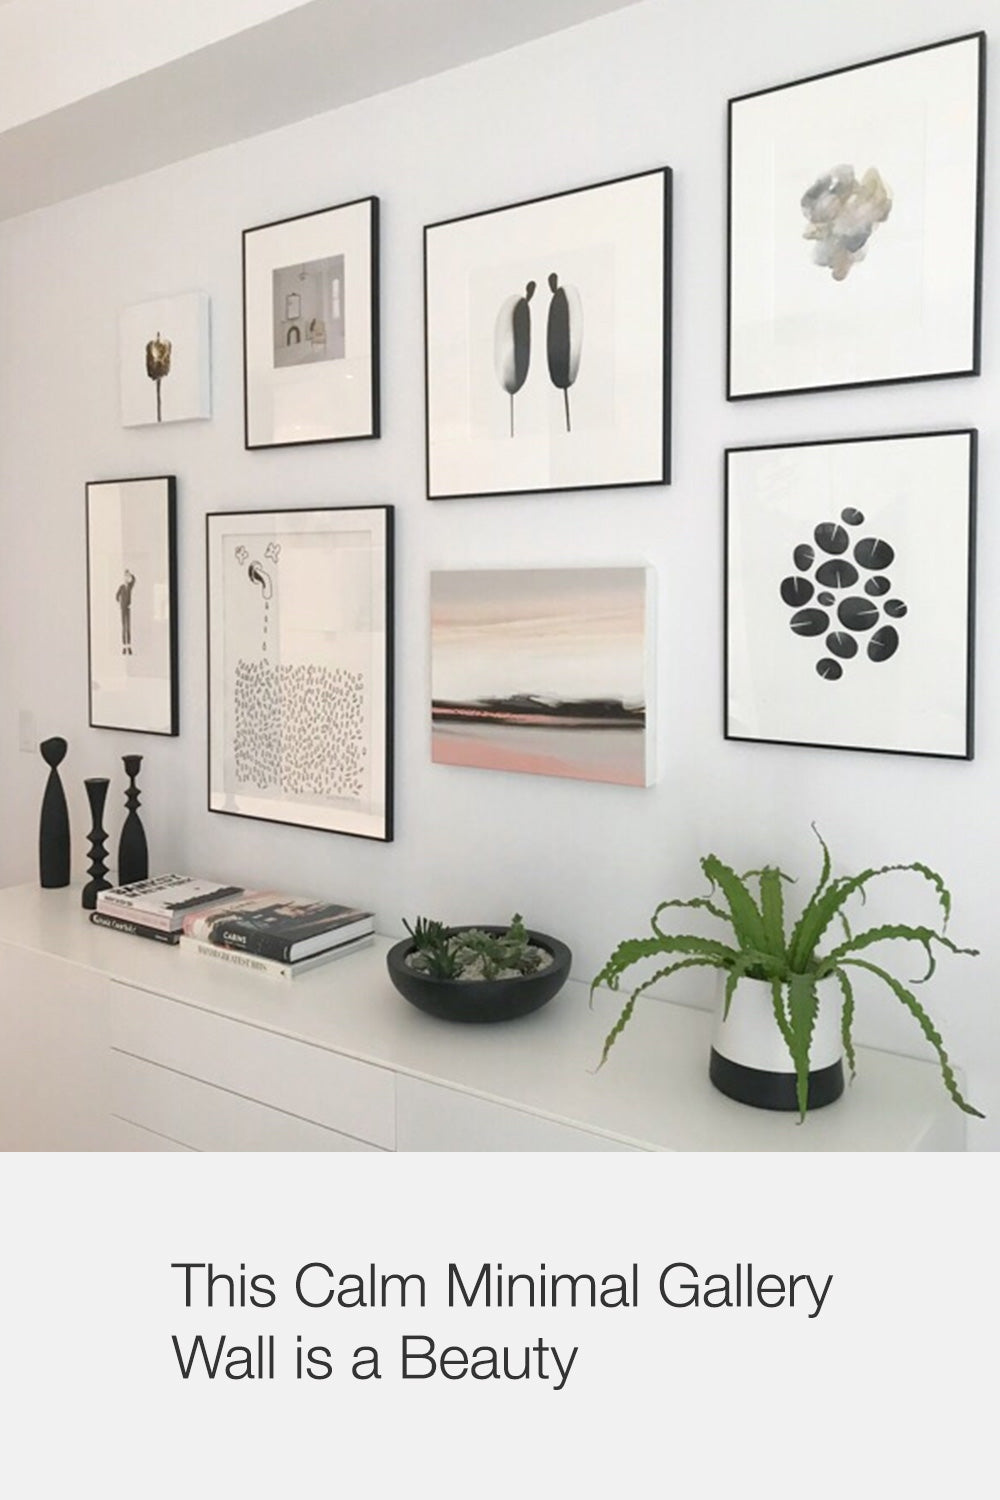 Calm Gallery Wall with Dance Graphic by Household Art | janet Taylor